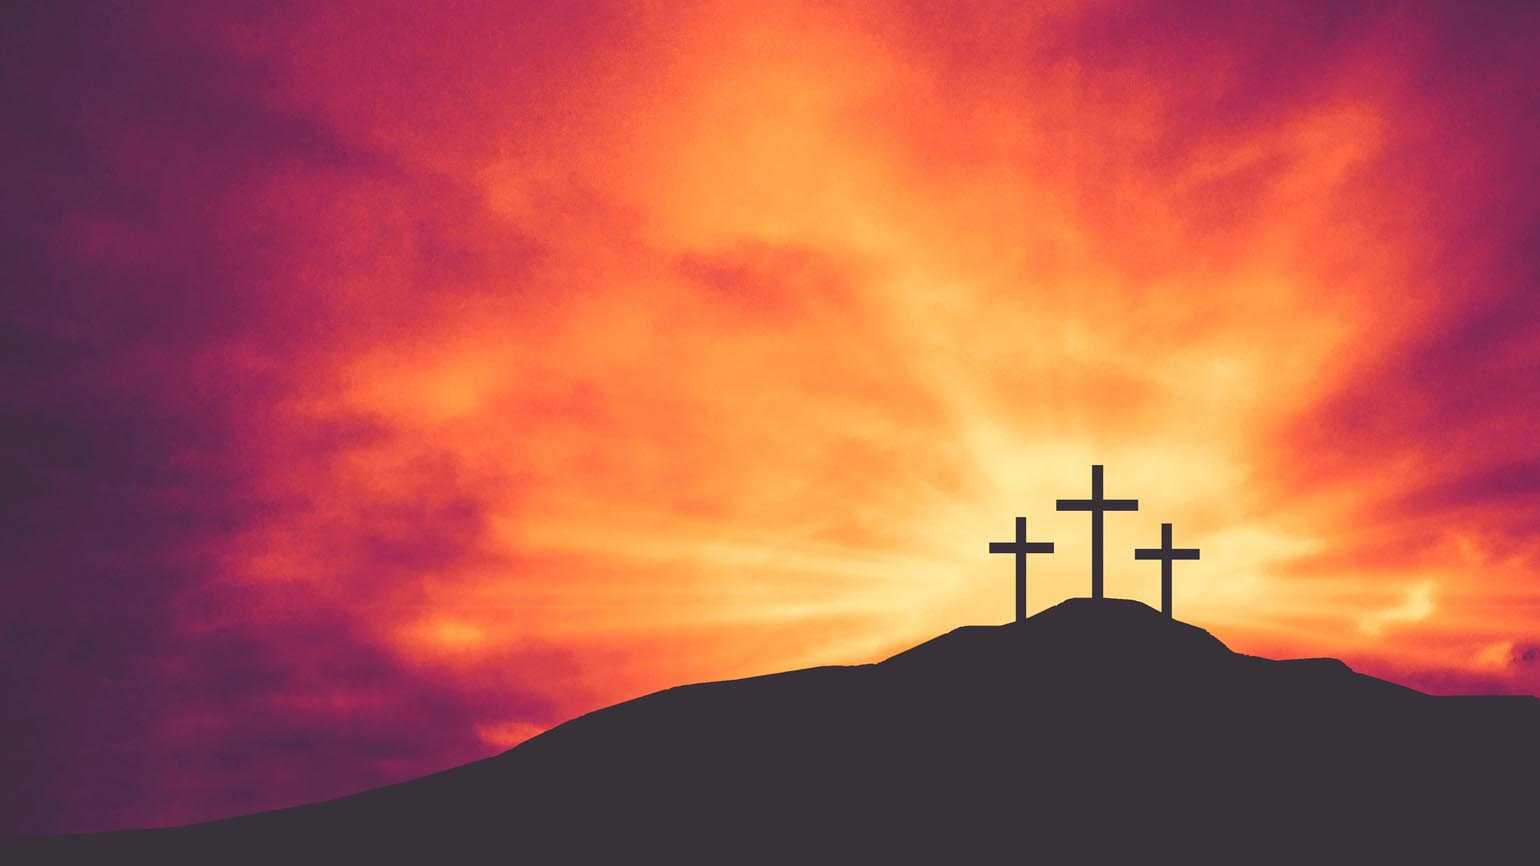 Three Christian Easter and Good Friday Holiday Crosses